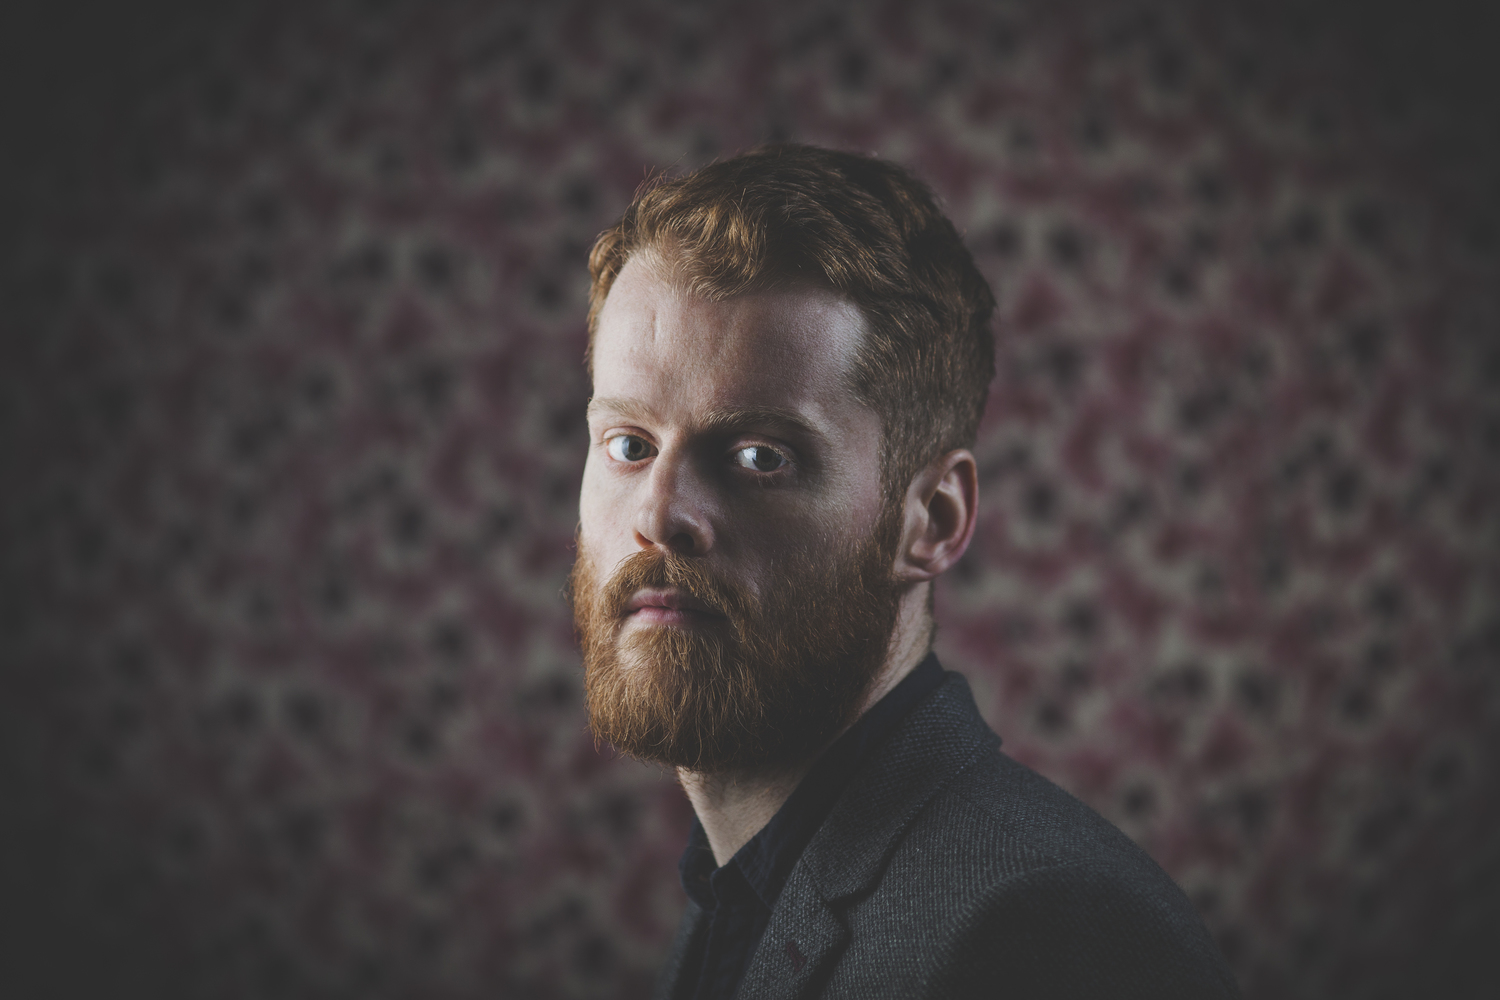 Ciaran Lavery Brings String Quartet to Gorgeous Covers of Bruce Springsteen and Joy Division